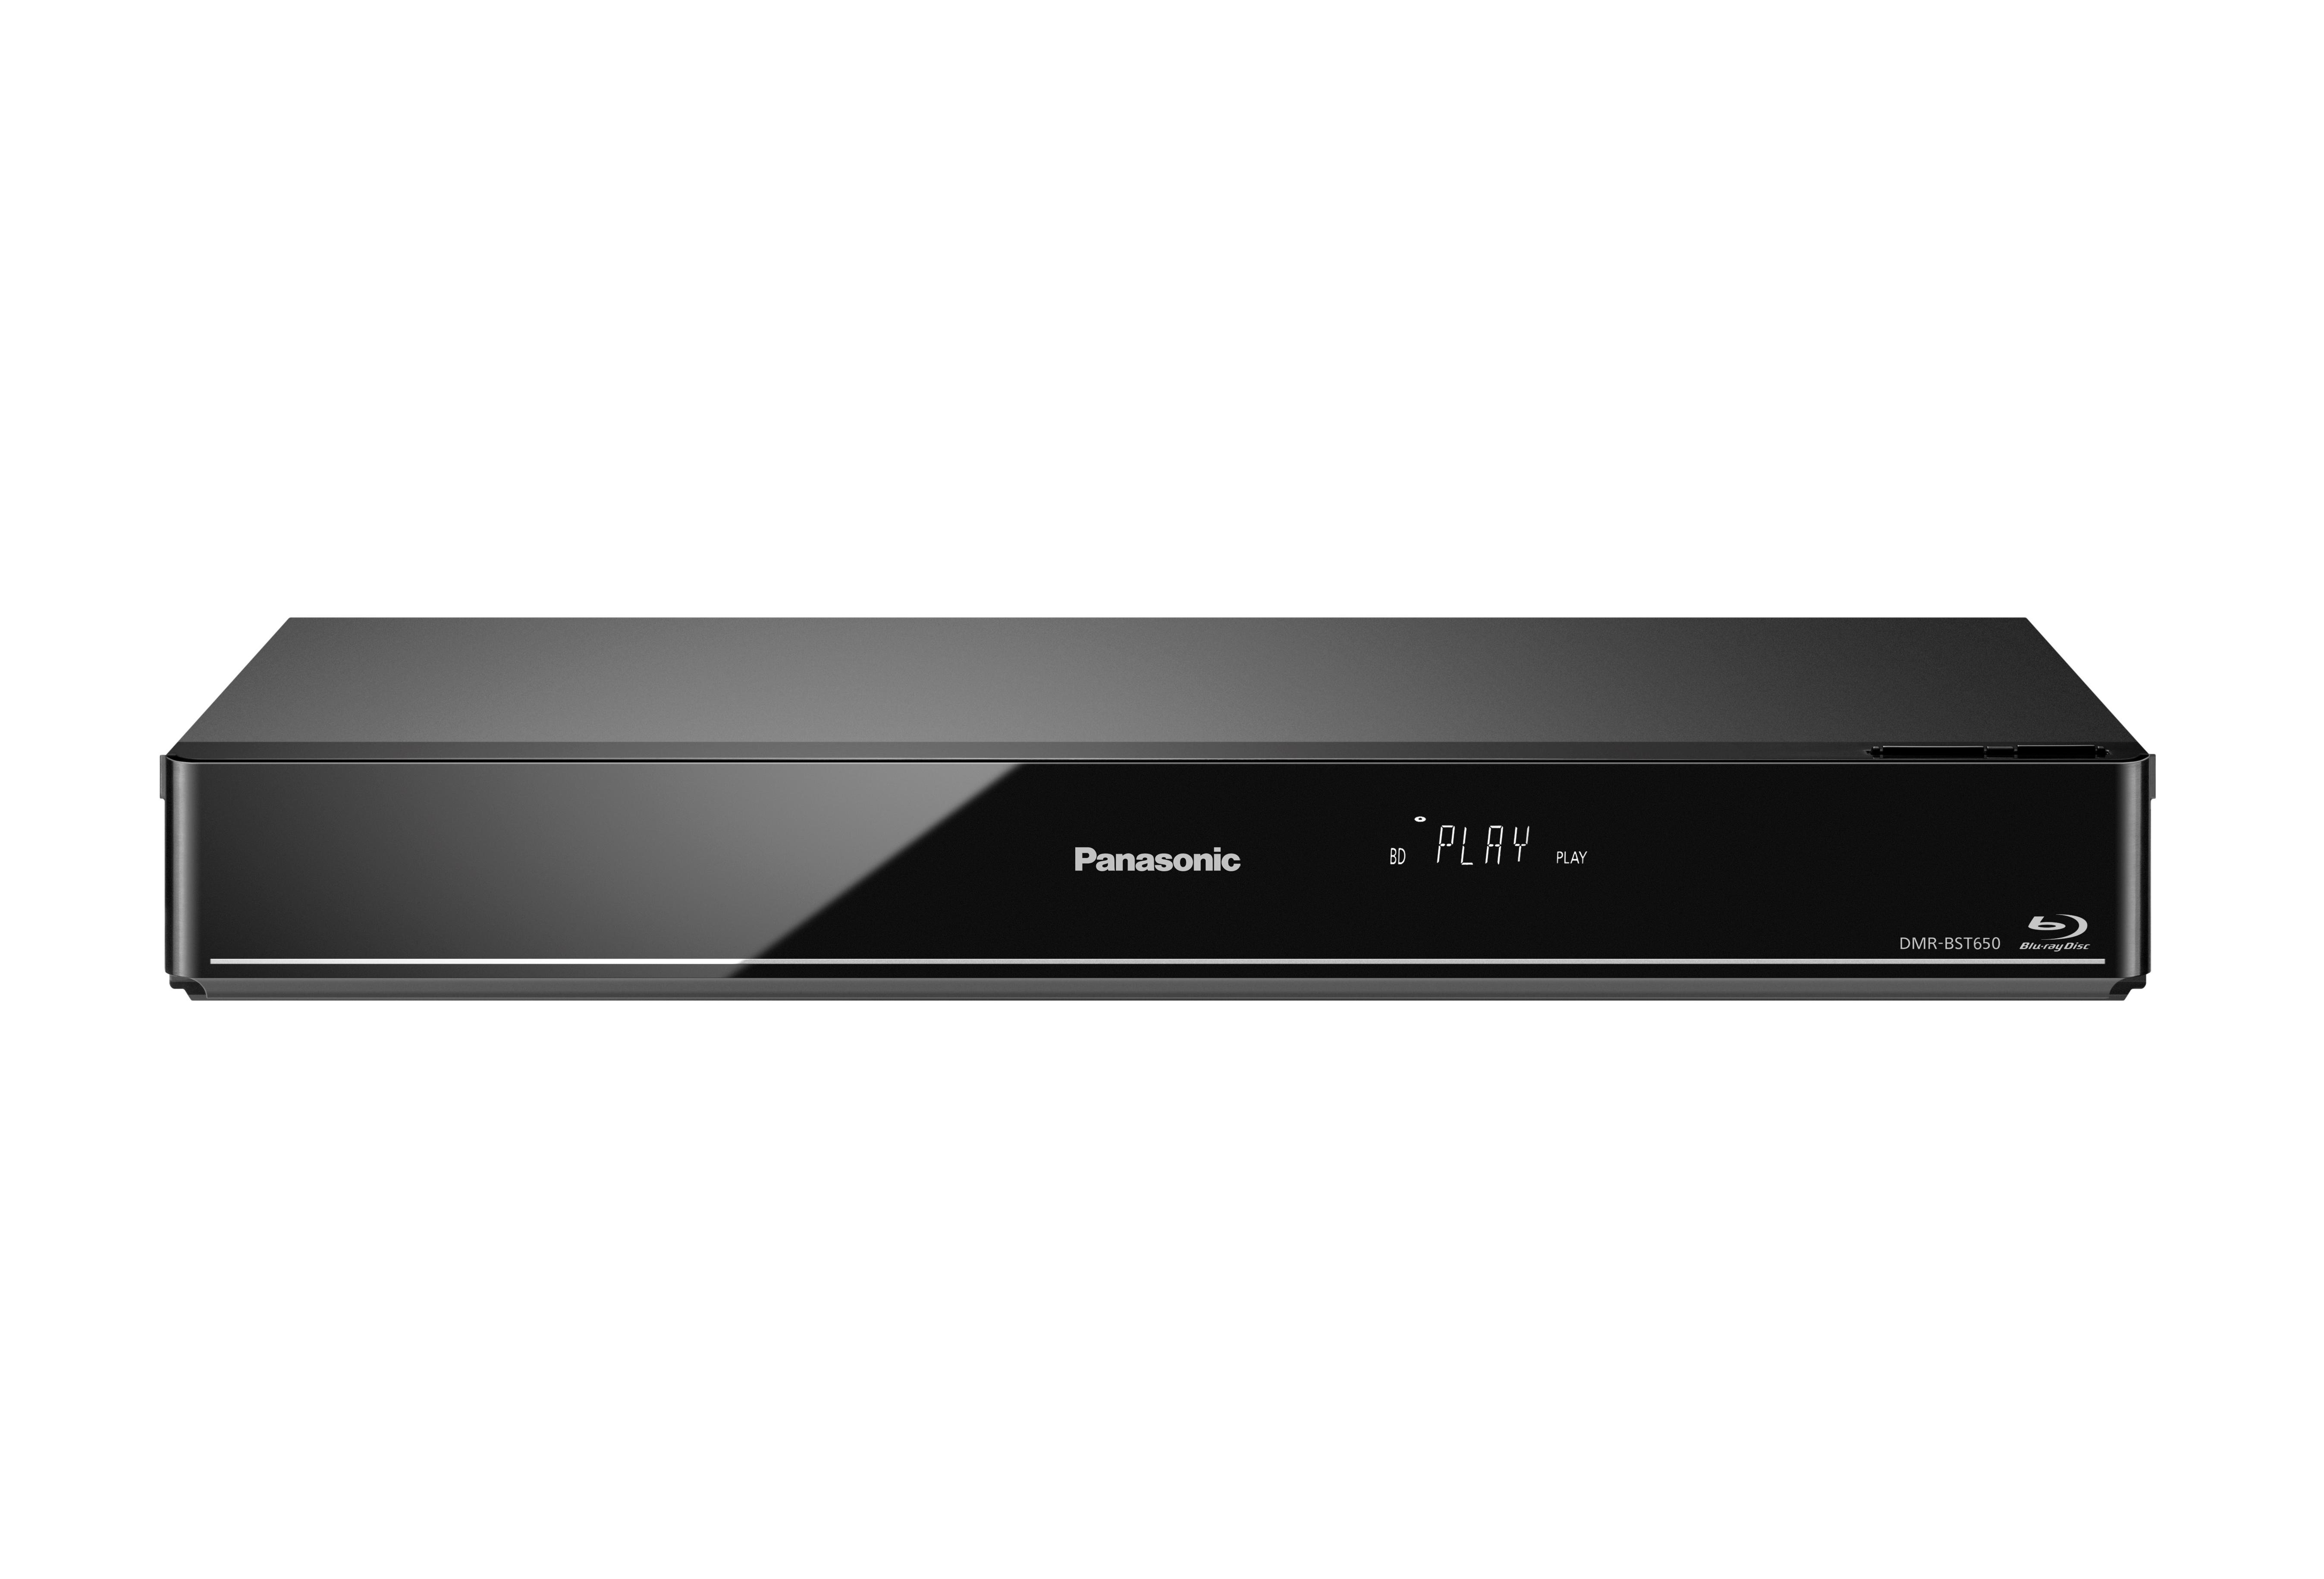 panasonic dmr bct650eg blu ray recorder mit 500 gb. Black Bedroom Furniture Sets. Home Design Ideas